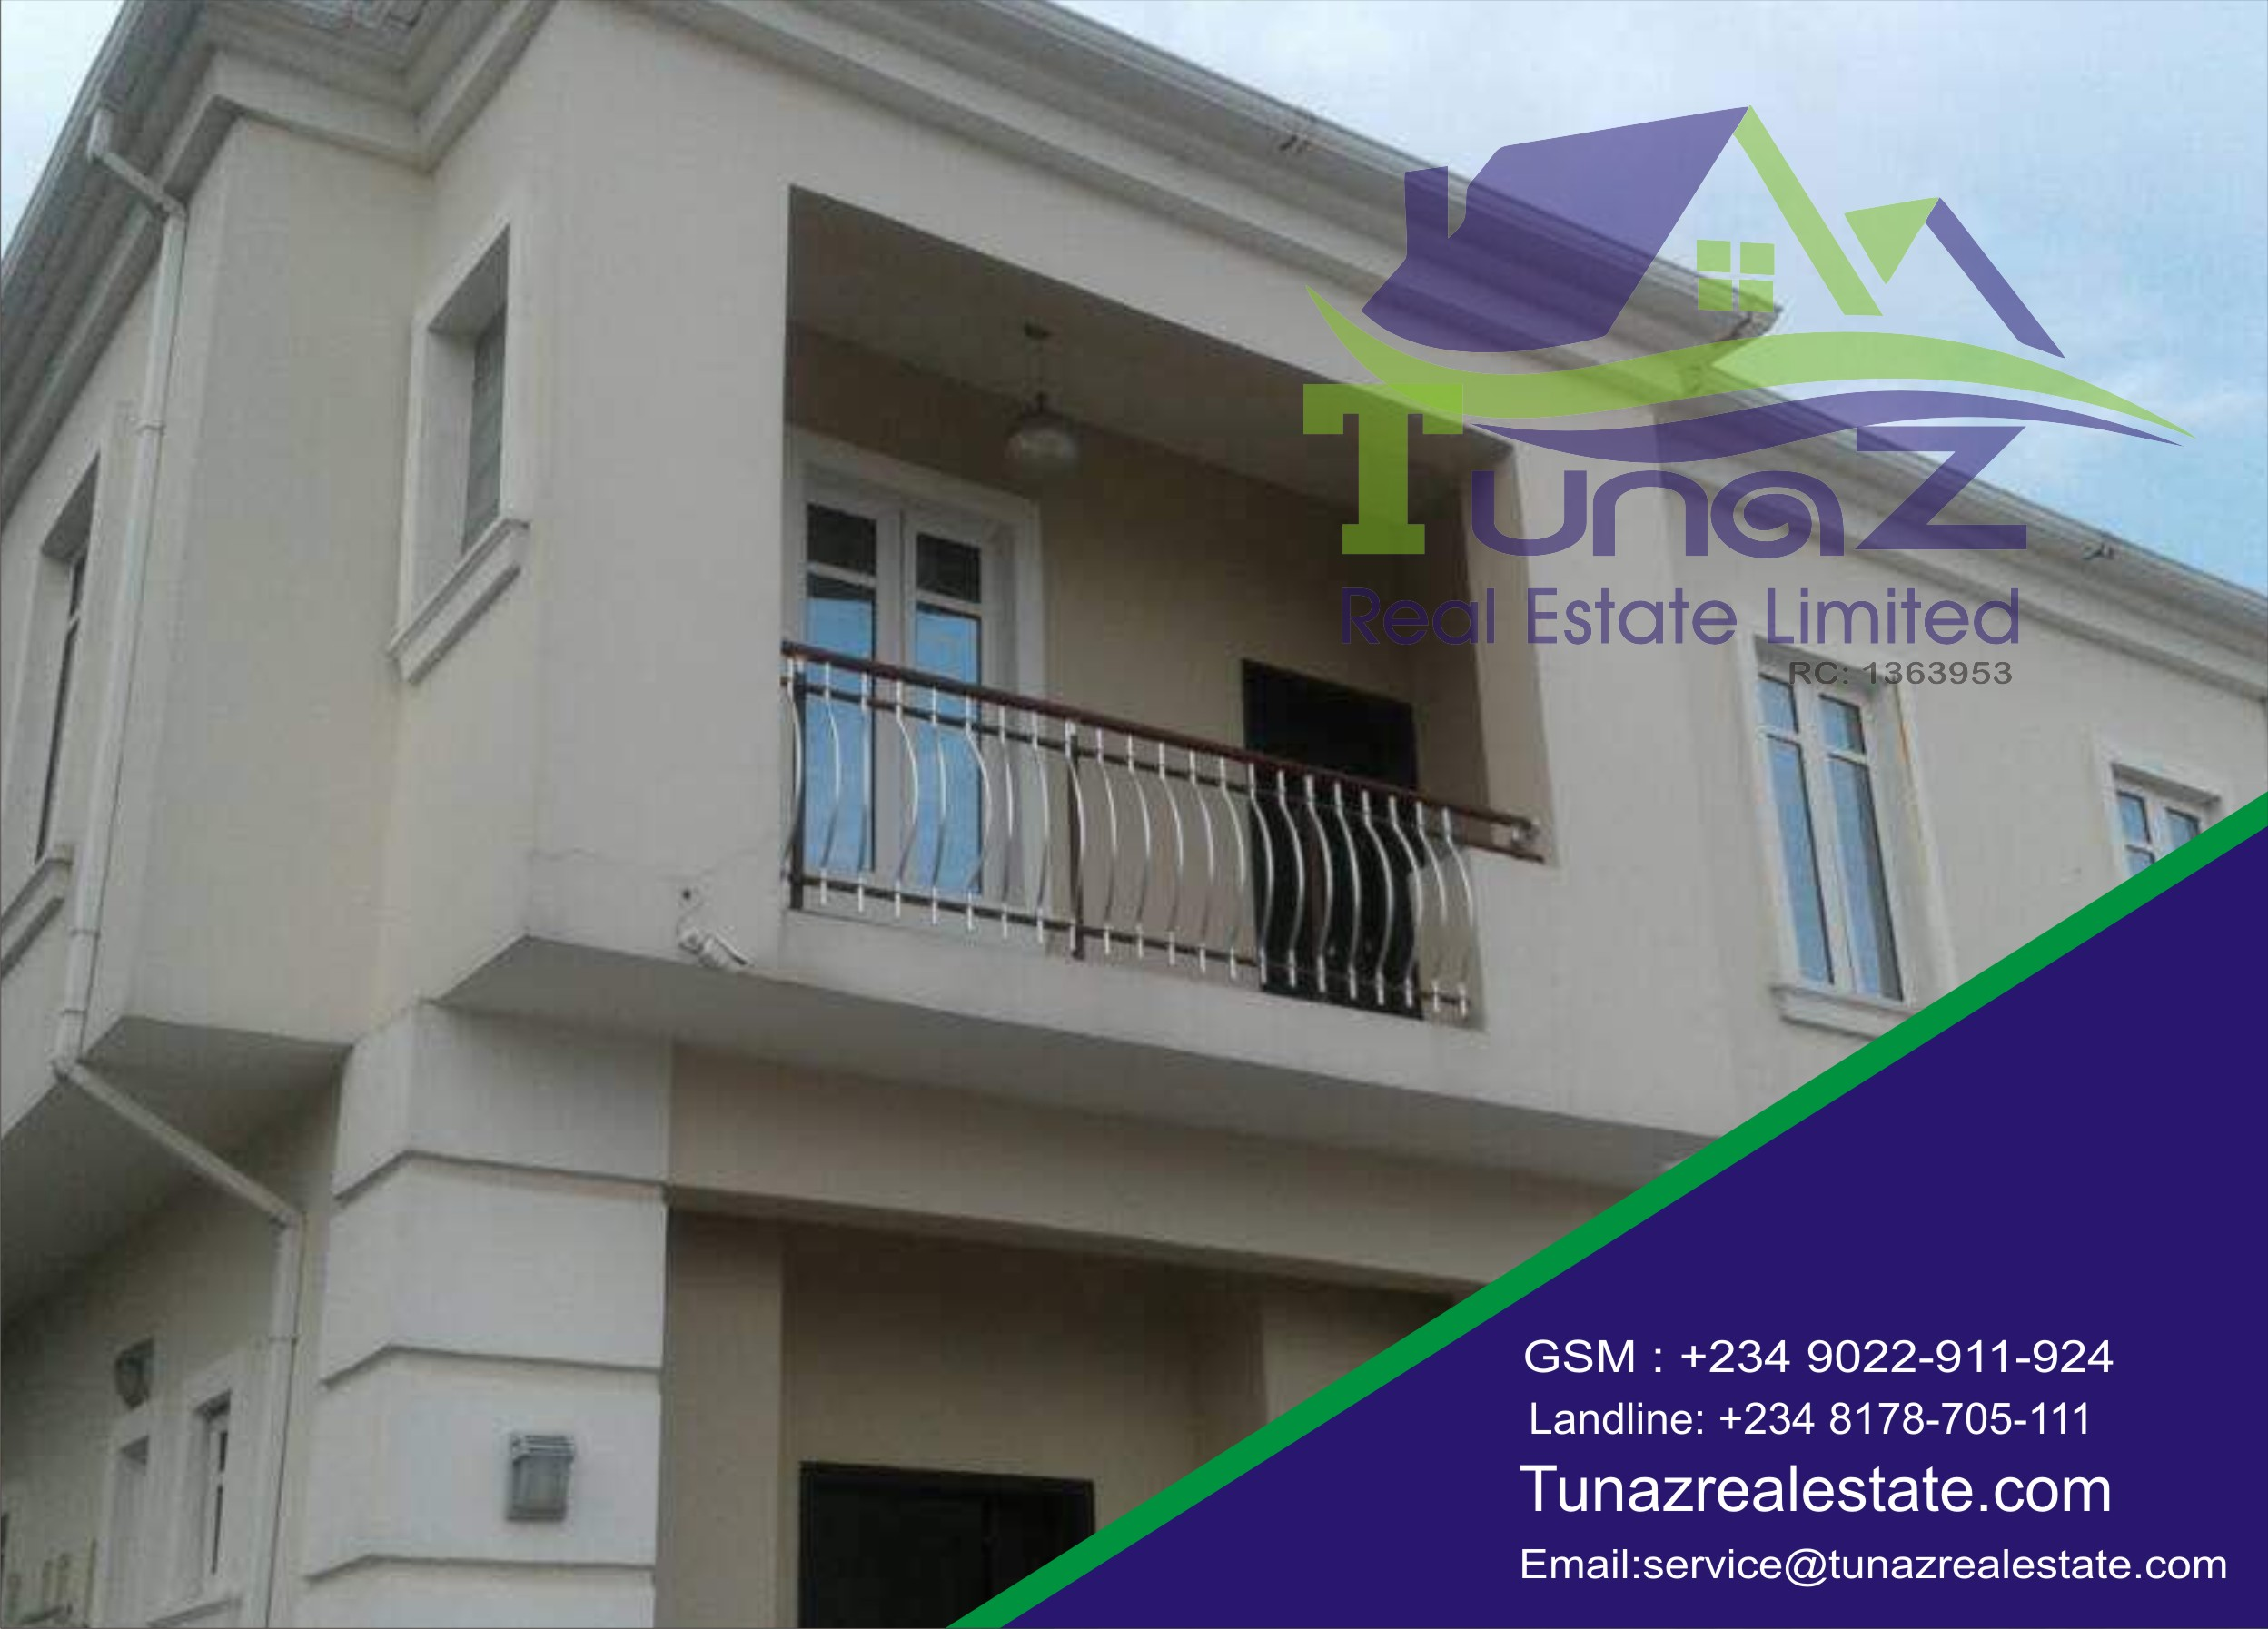 A 5 Bedroom Fully Detached Duplex With A 5 Car Packing Space For Sale